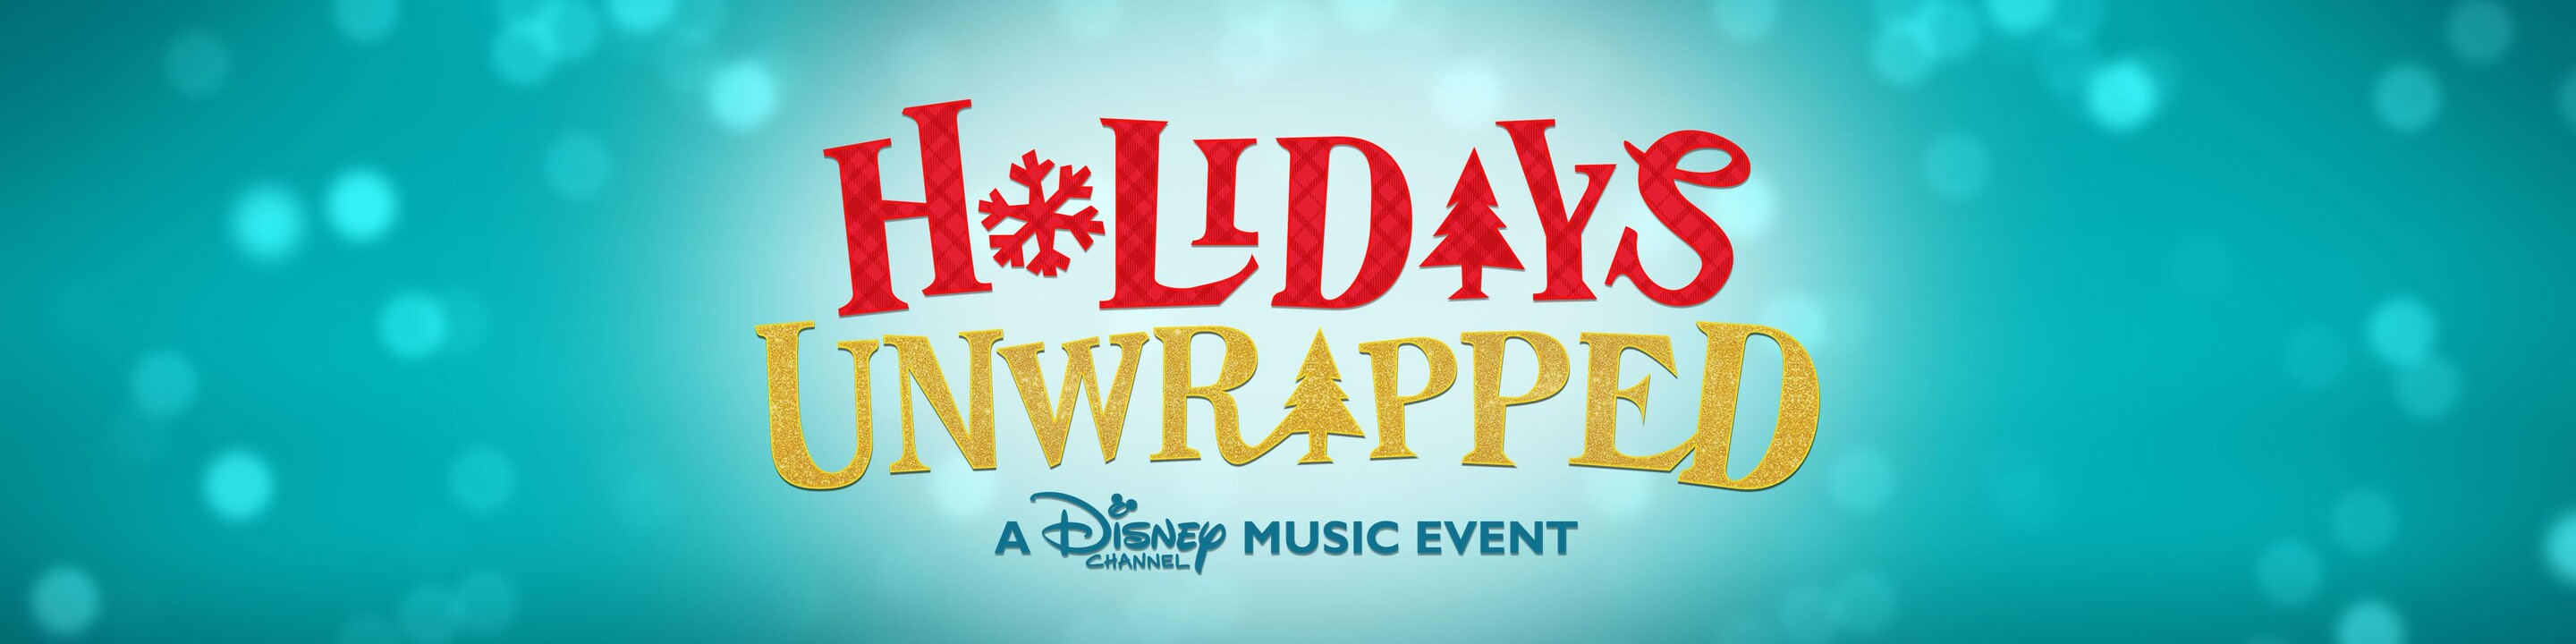 Disney Channel: Holidays Unwrapped